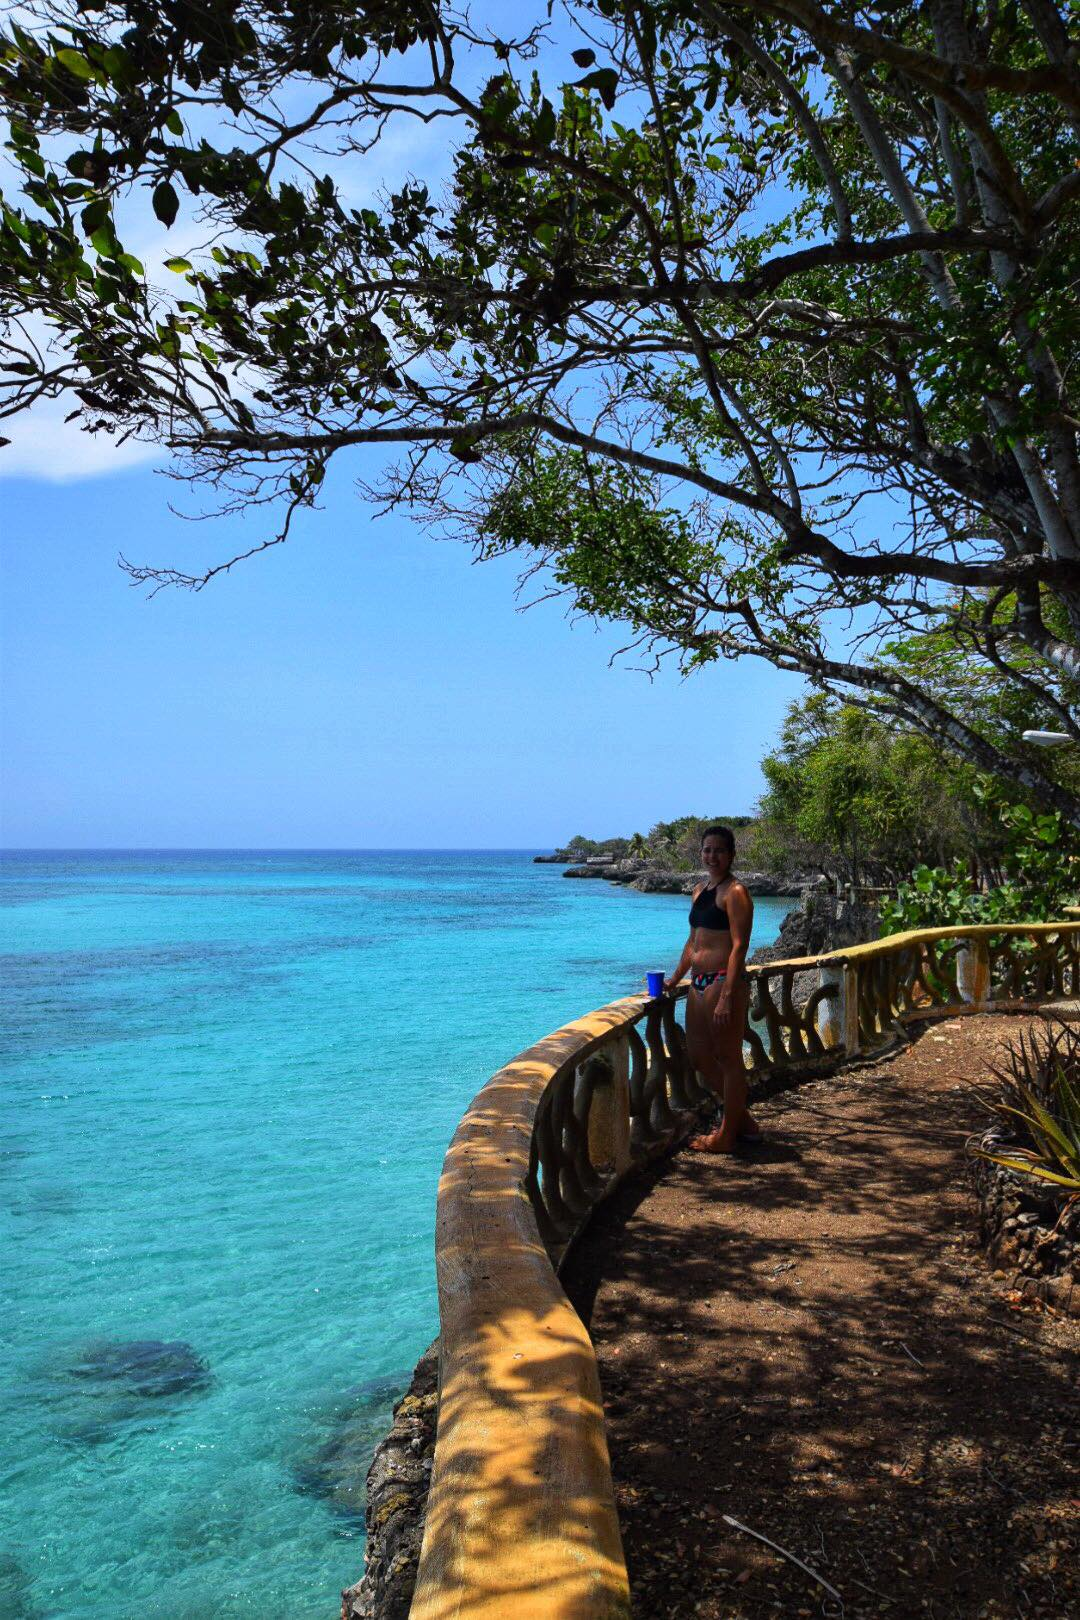 Liveaboard Life Day 101: Motorbike Trip to Fricolandia in Luperon, Dominican Republic